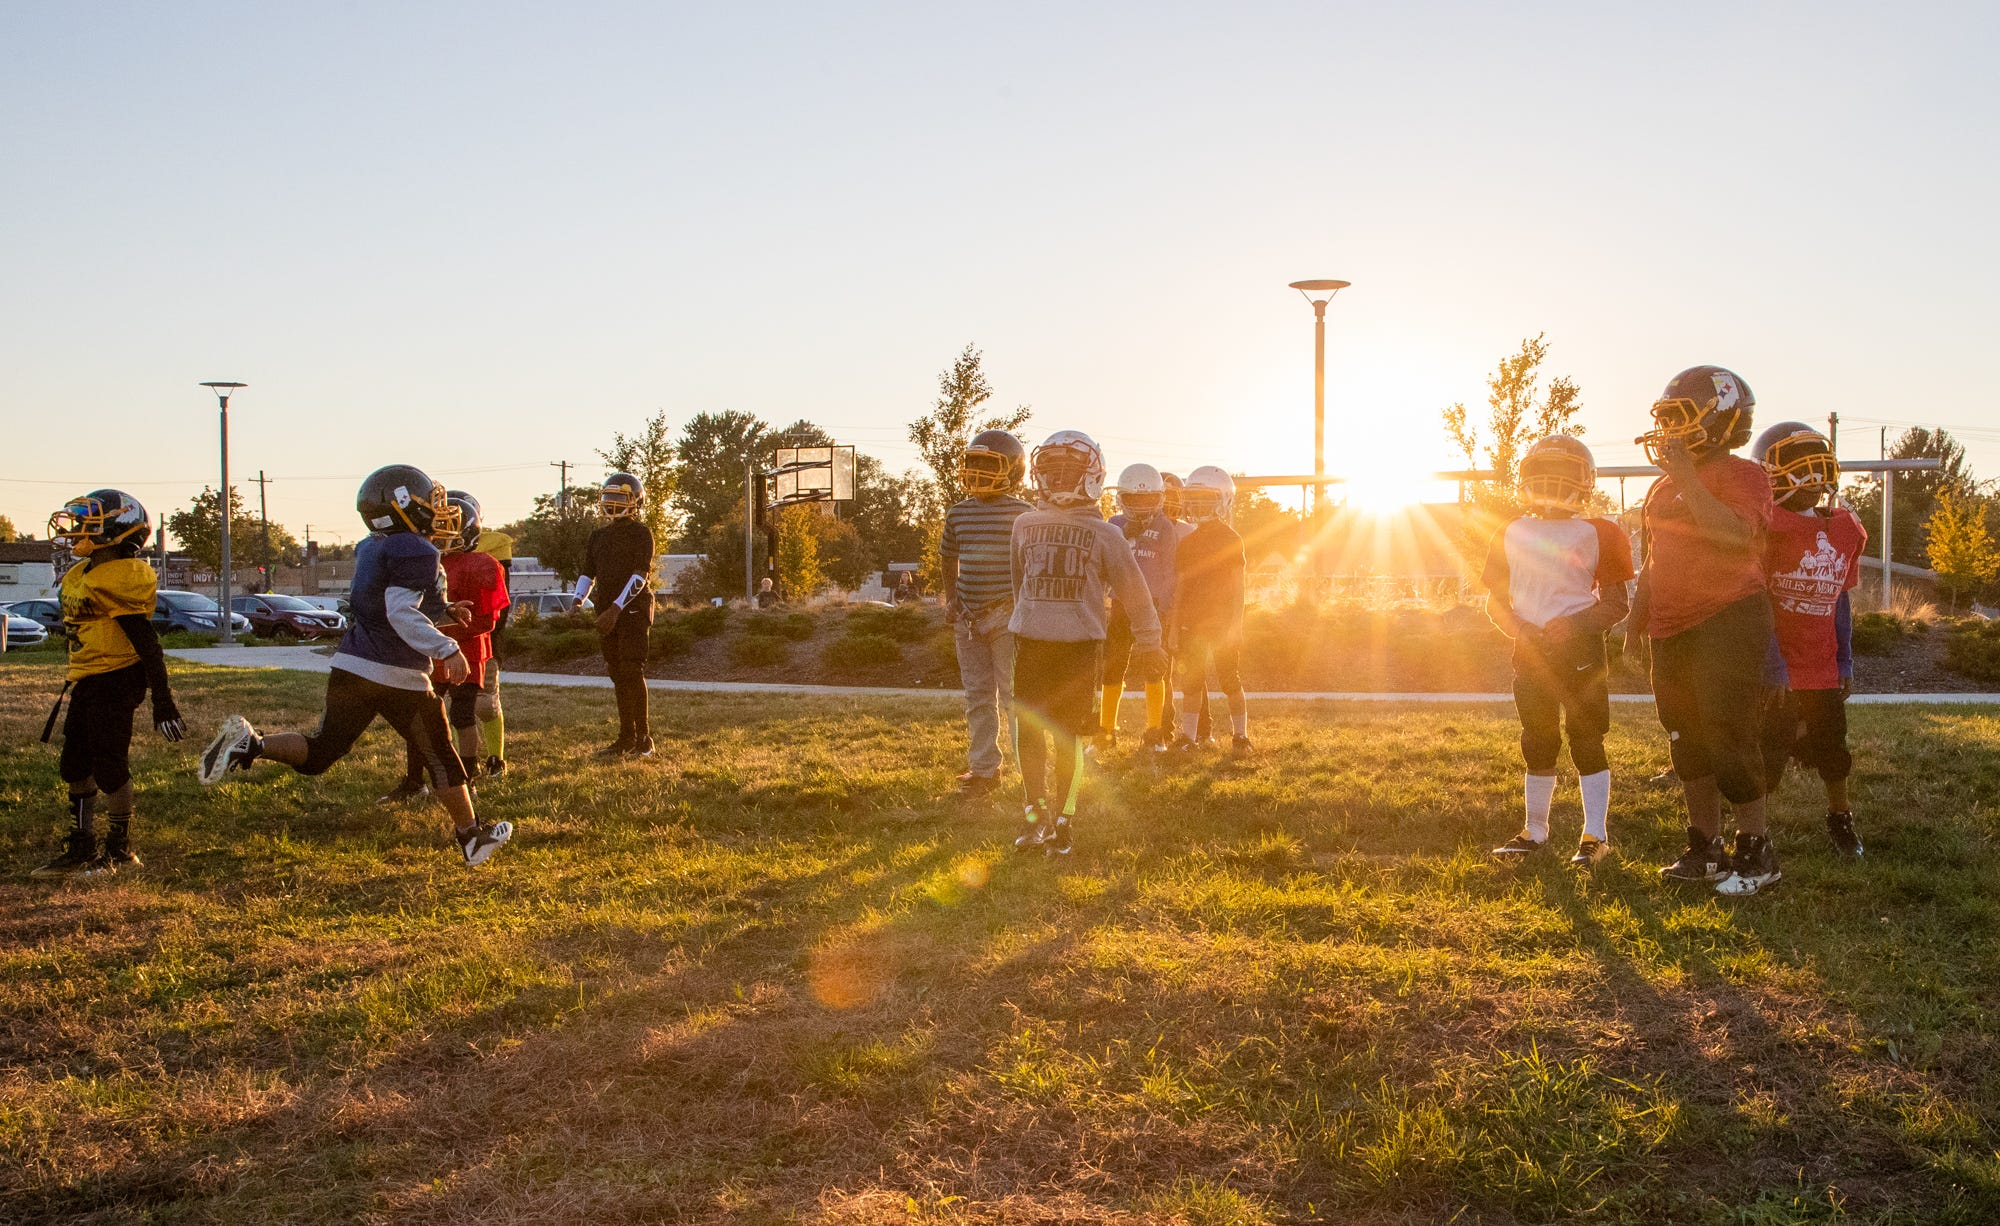 """The Indy Steelers practice as the sun sets at Tarkington Park, where the team's practice field is located, in Indianapolis. """"Tarkington side, you can go right around the corner and it'll be shootings, robberies, you'll hear police sirens,"""" said Donnell Hamilton, who grew up in the Butler-Tarkington neighborhood and founded the Indy Steelers 15-years ago. """"It's a bit more of a struggling side. Some people wouldn't understand what some of these kids are going through. Some people are really hungry out here. It's a lot going on out here, it's a lot."""" Former Indy Steeler player Jay Roberts, who now plays for a local high school team, says the program needs to stay around as long as it can. """"They're not just at home bored, they're not seeing what's going on in their environment,"""" he said. """"They get a chance to take two hours out of their lives to have fun."""""""